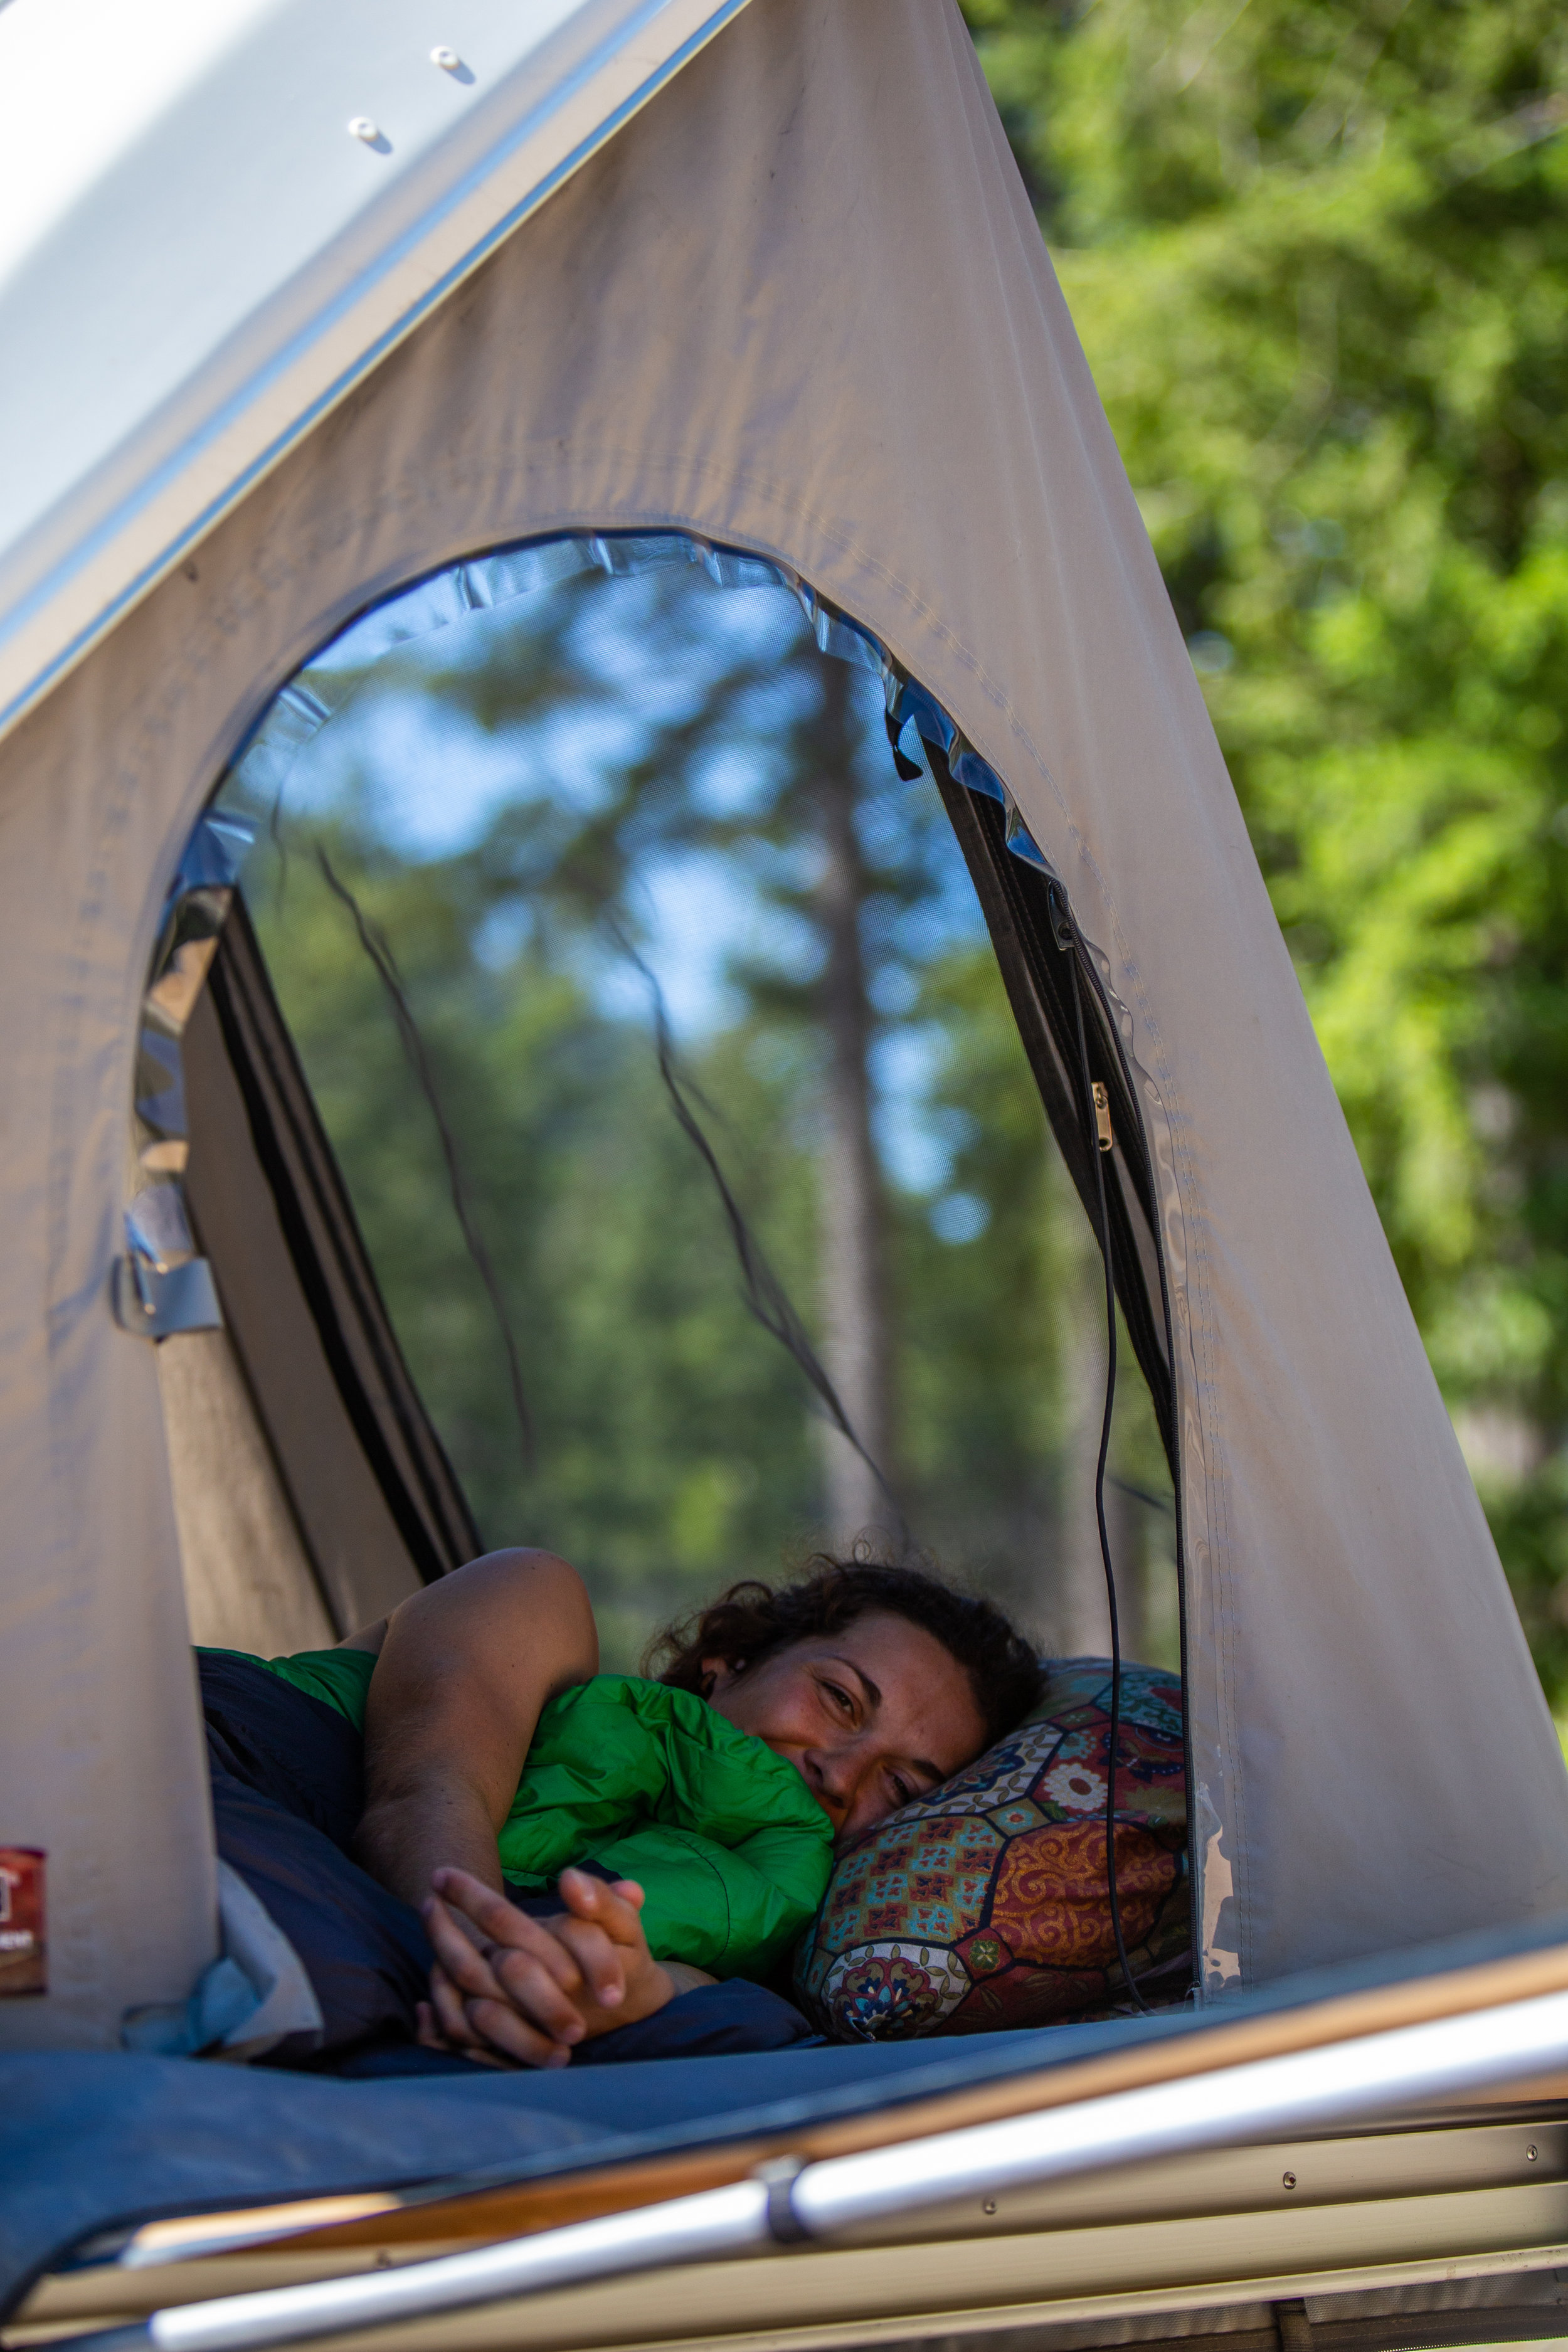 The luxury of camping, mid-afternoon naps.